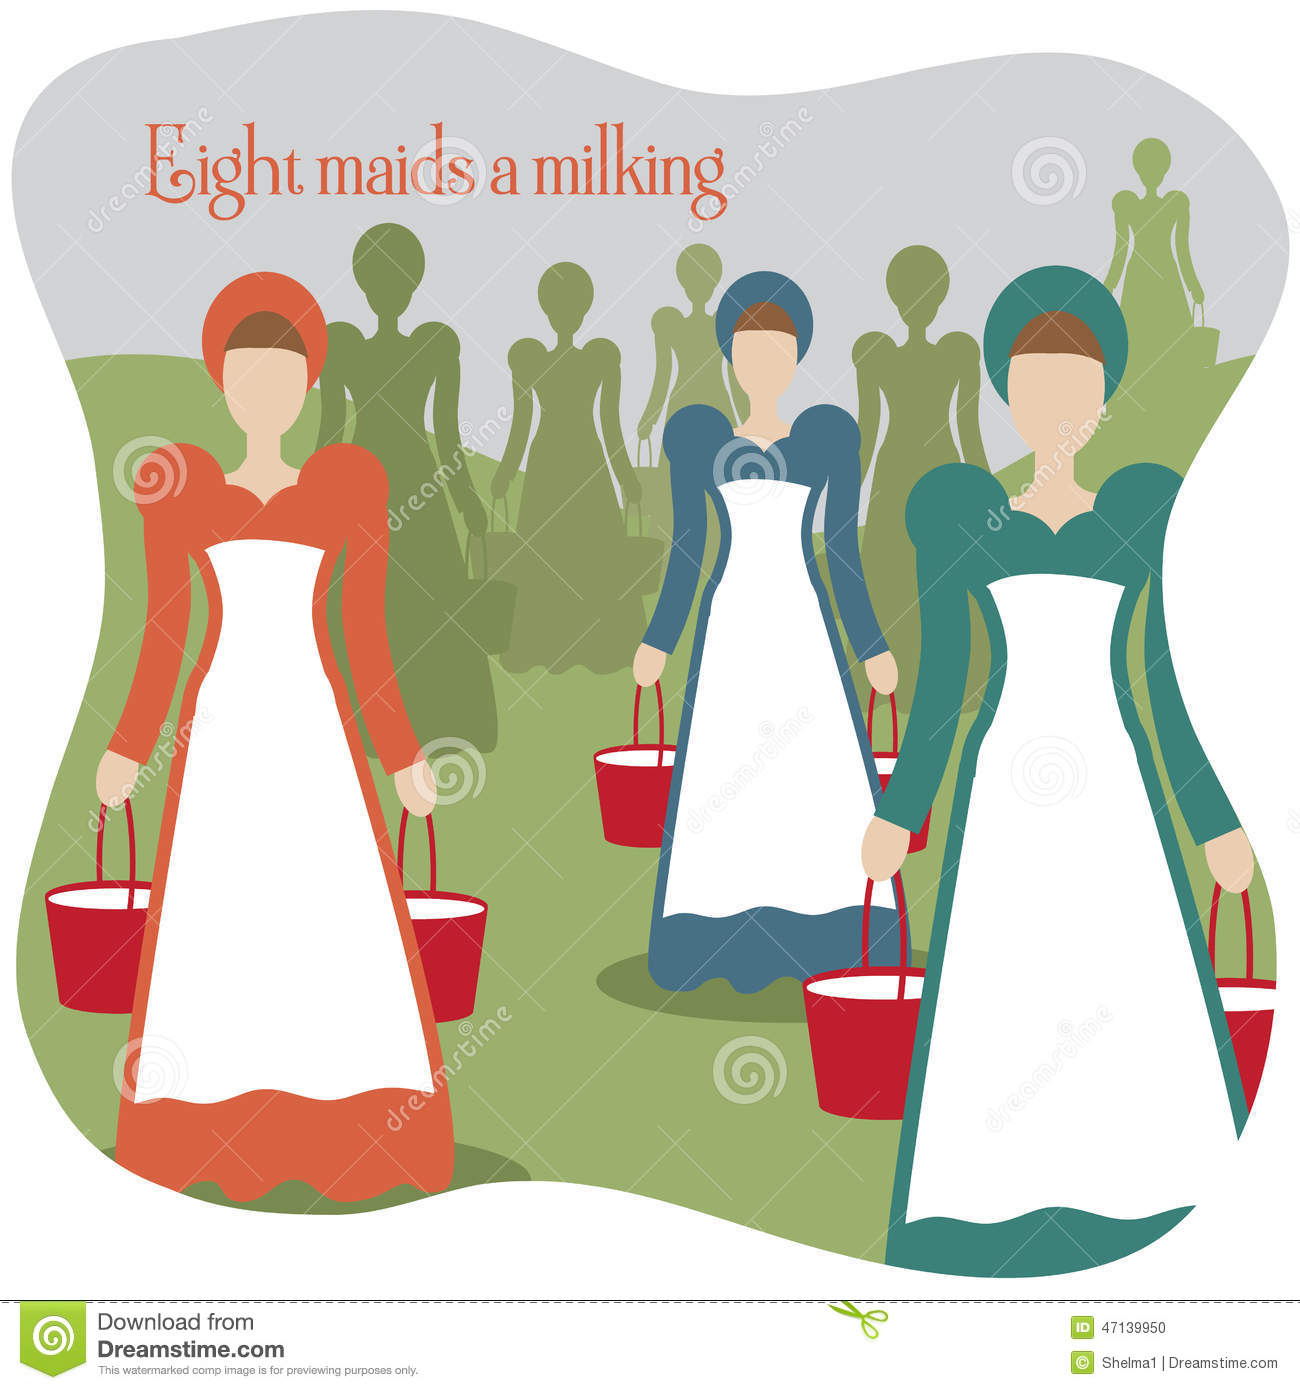 maids a milking 12 days of christmas